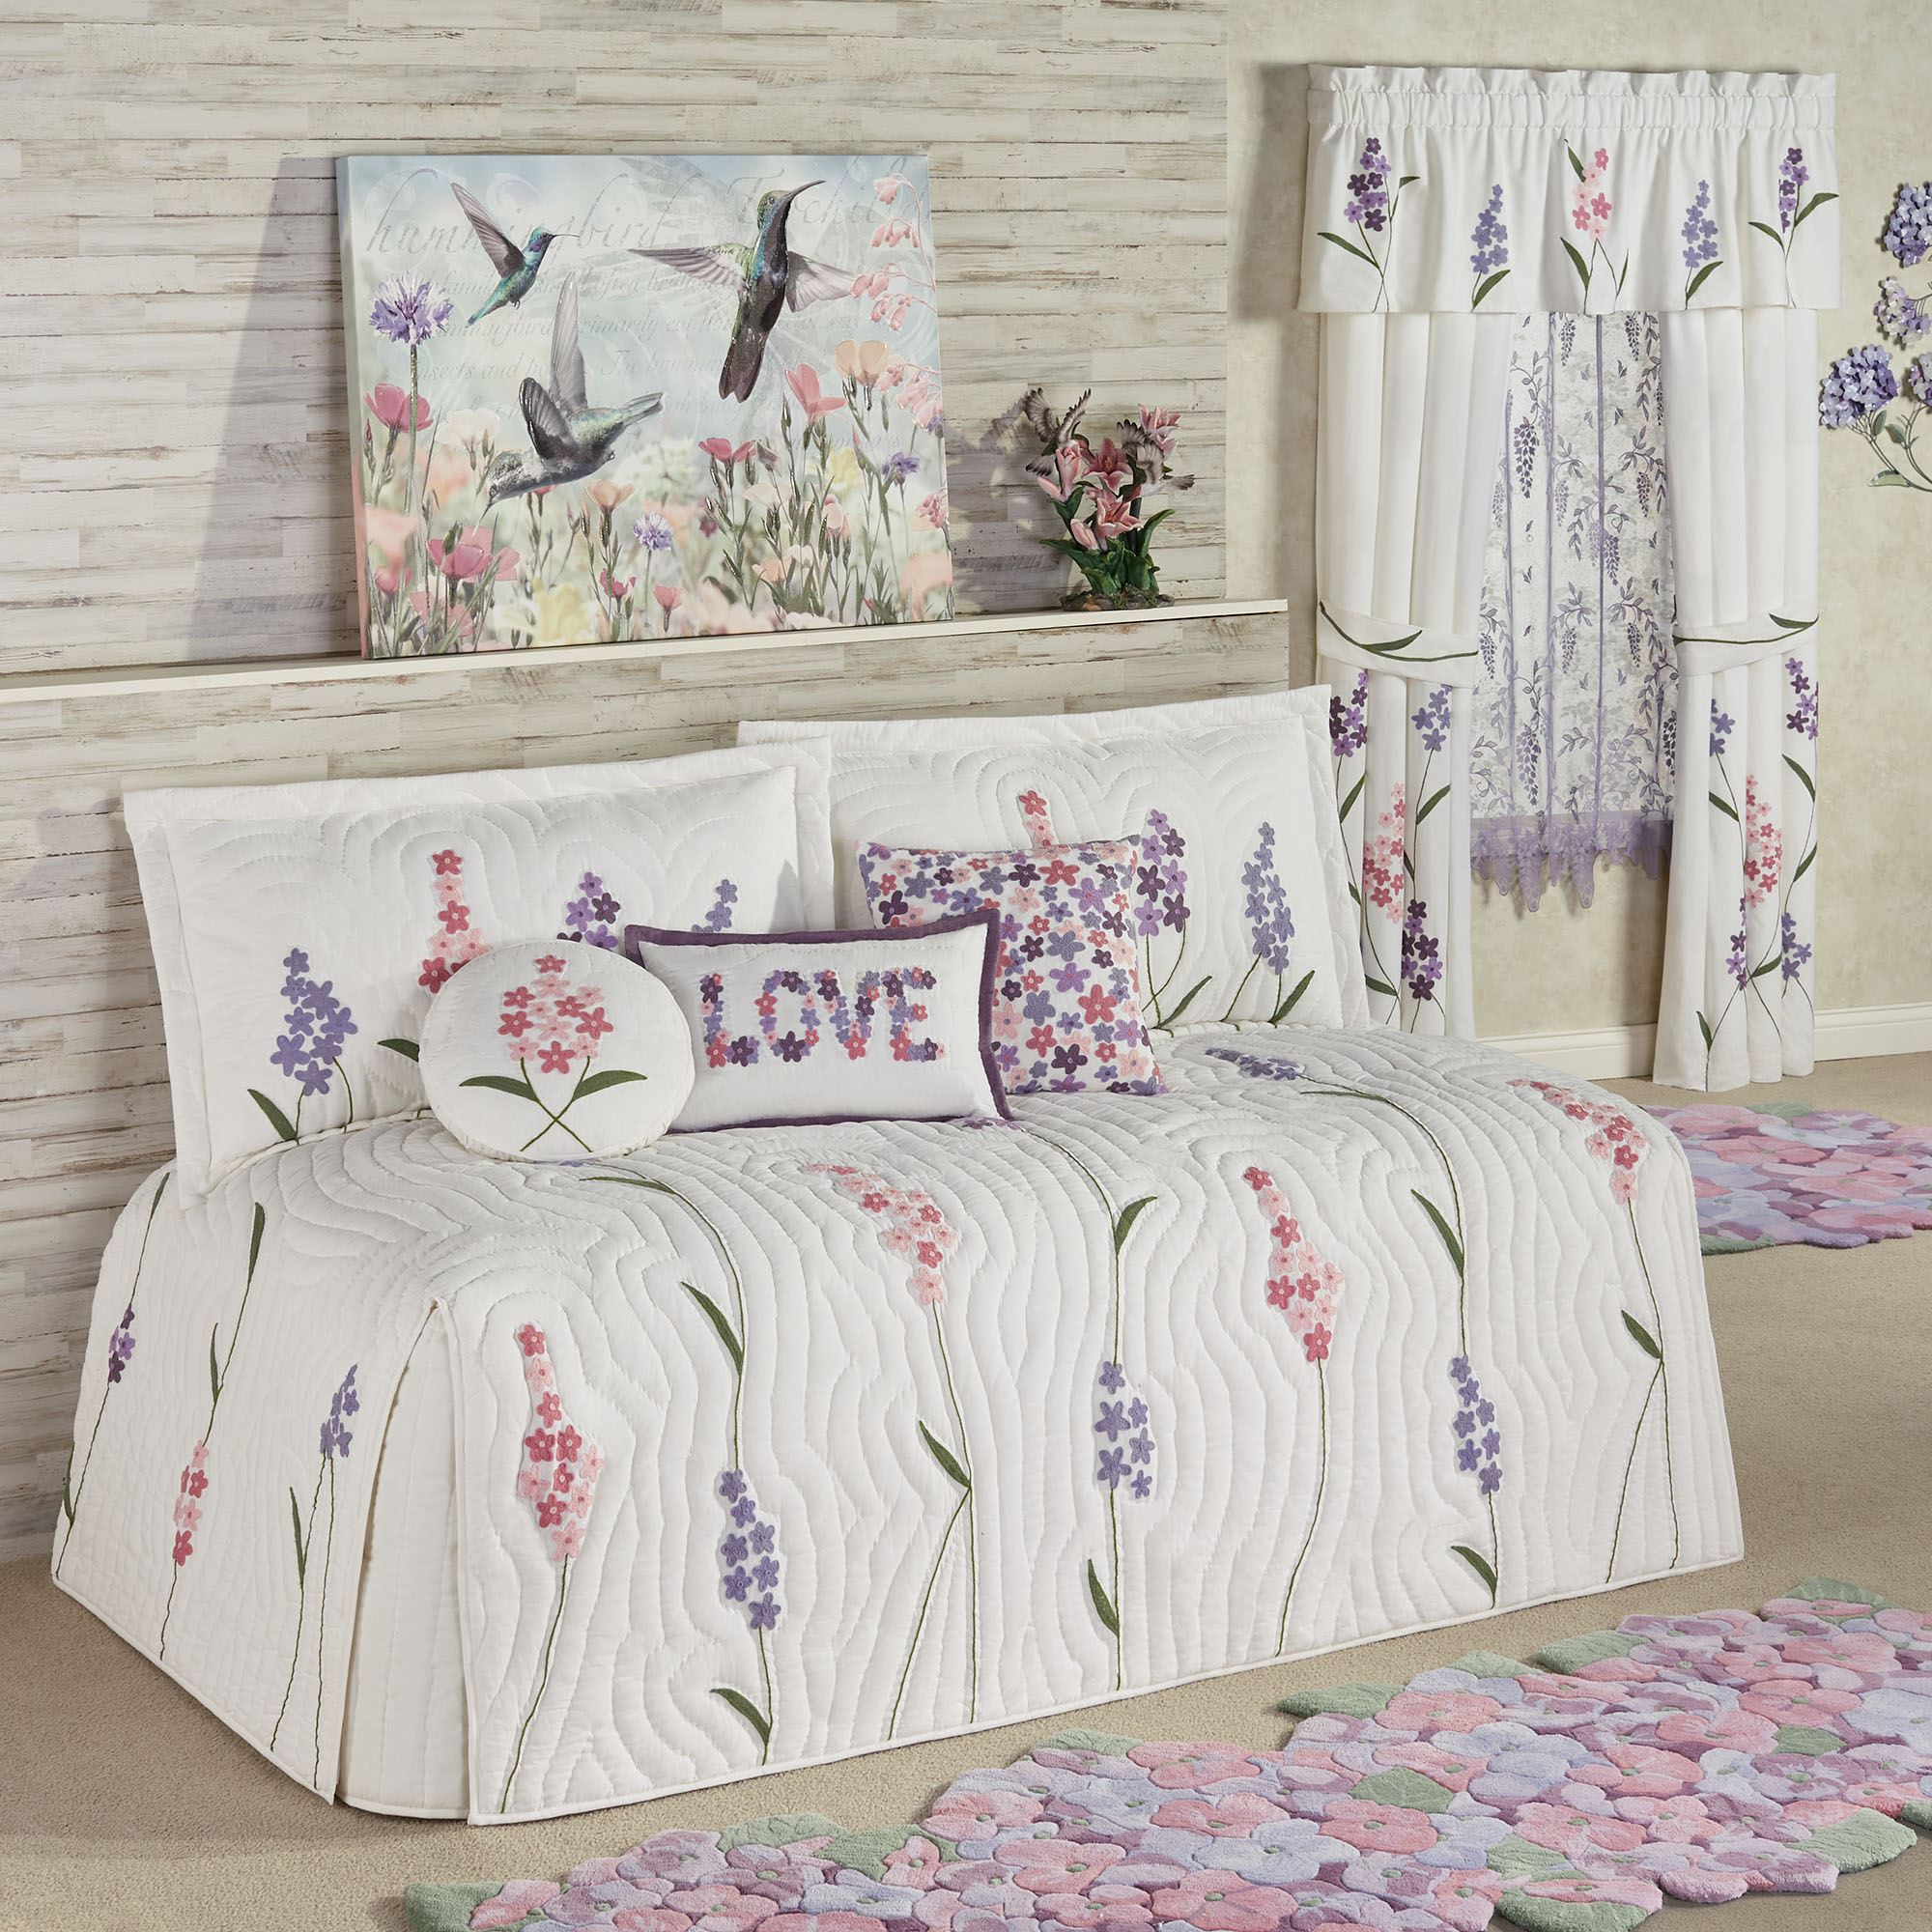 wildflowers floral quilted daybed bedding set